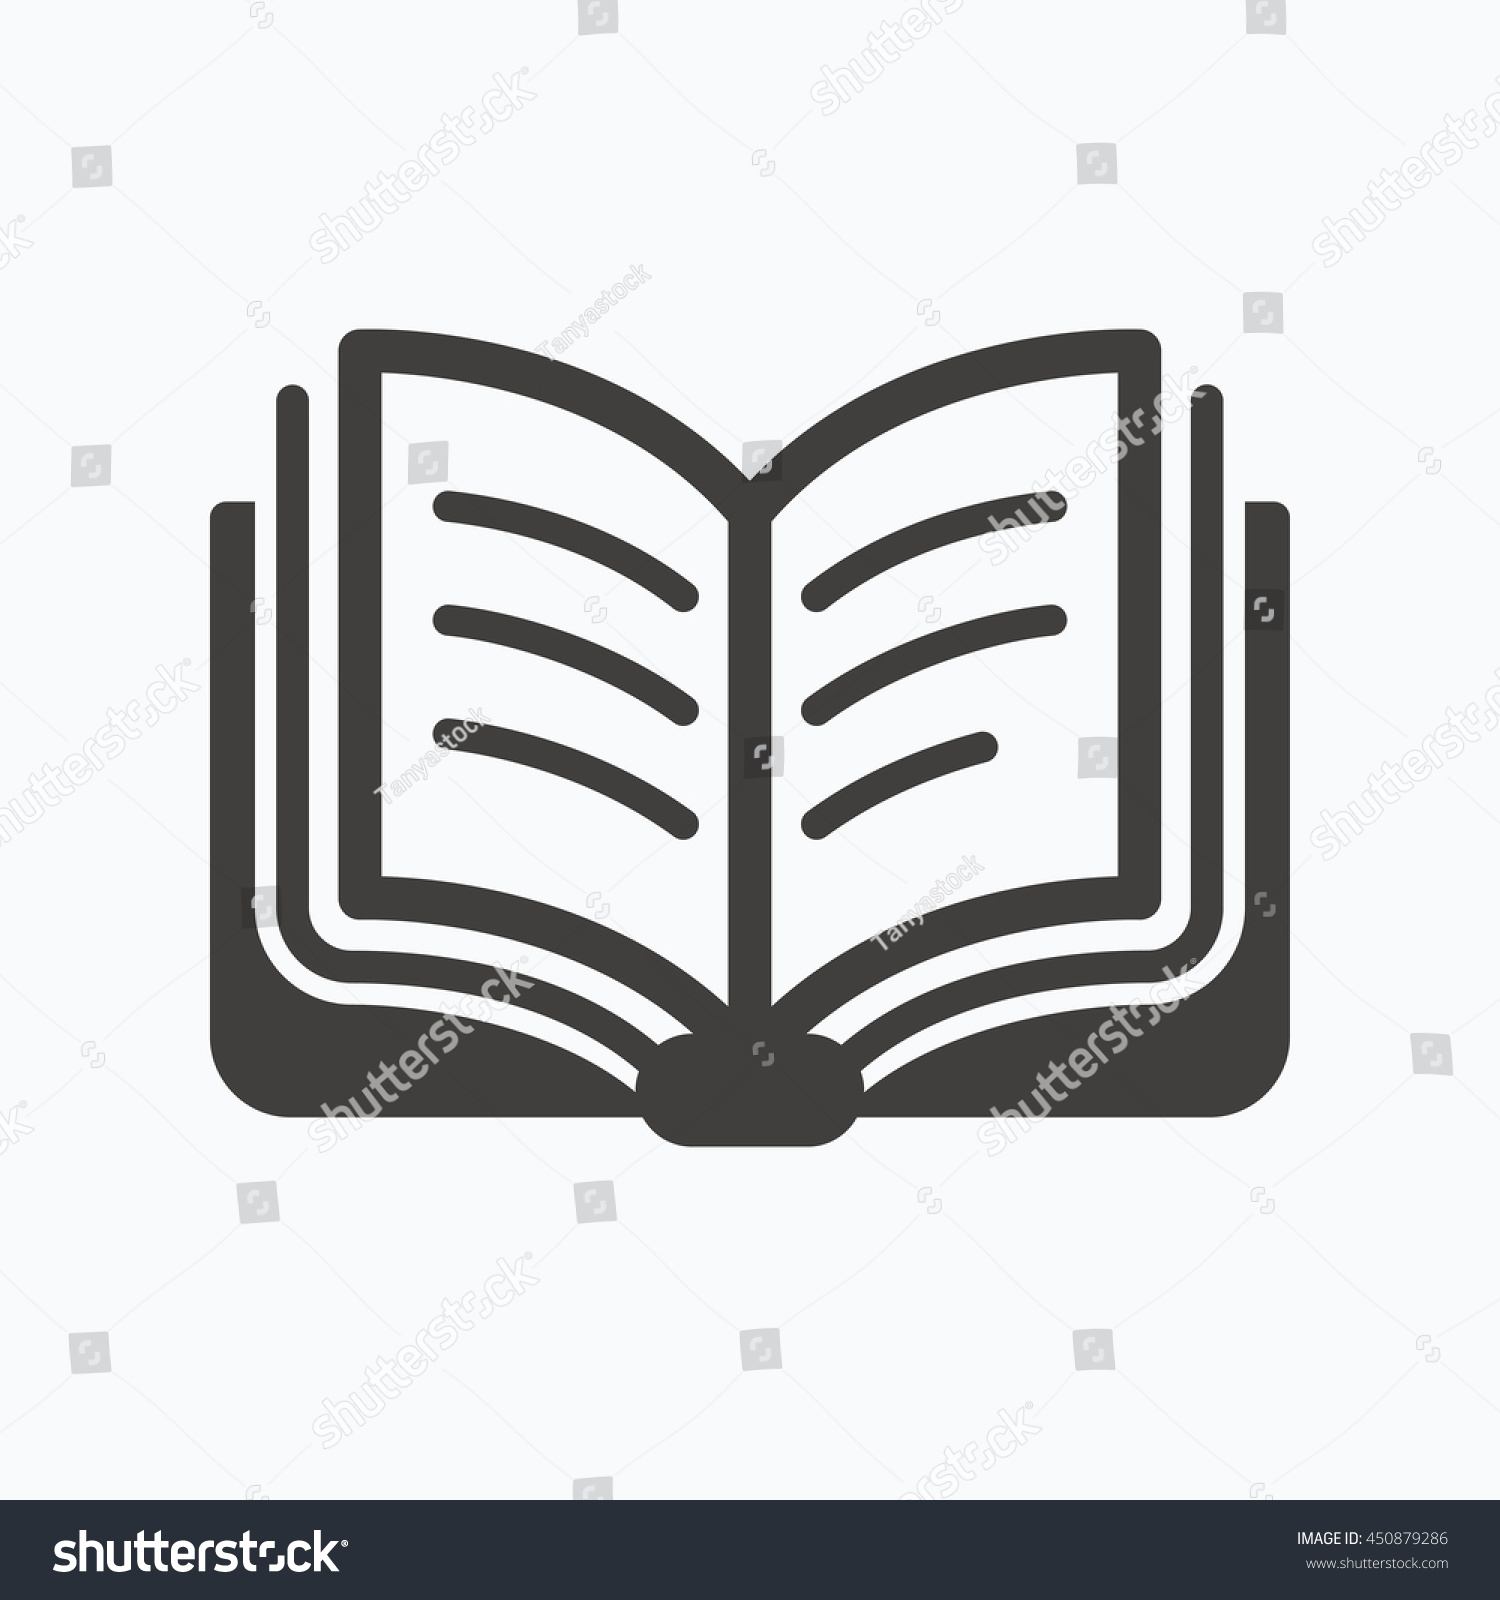 book icon study literature sign education stock vector  study literature sign education textbook symbol gray flat web icon on